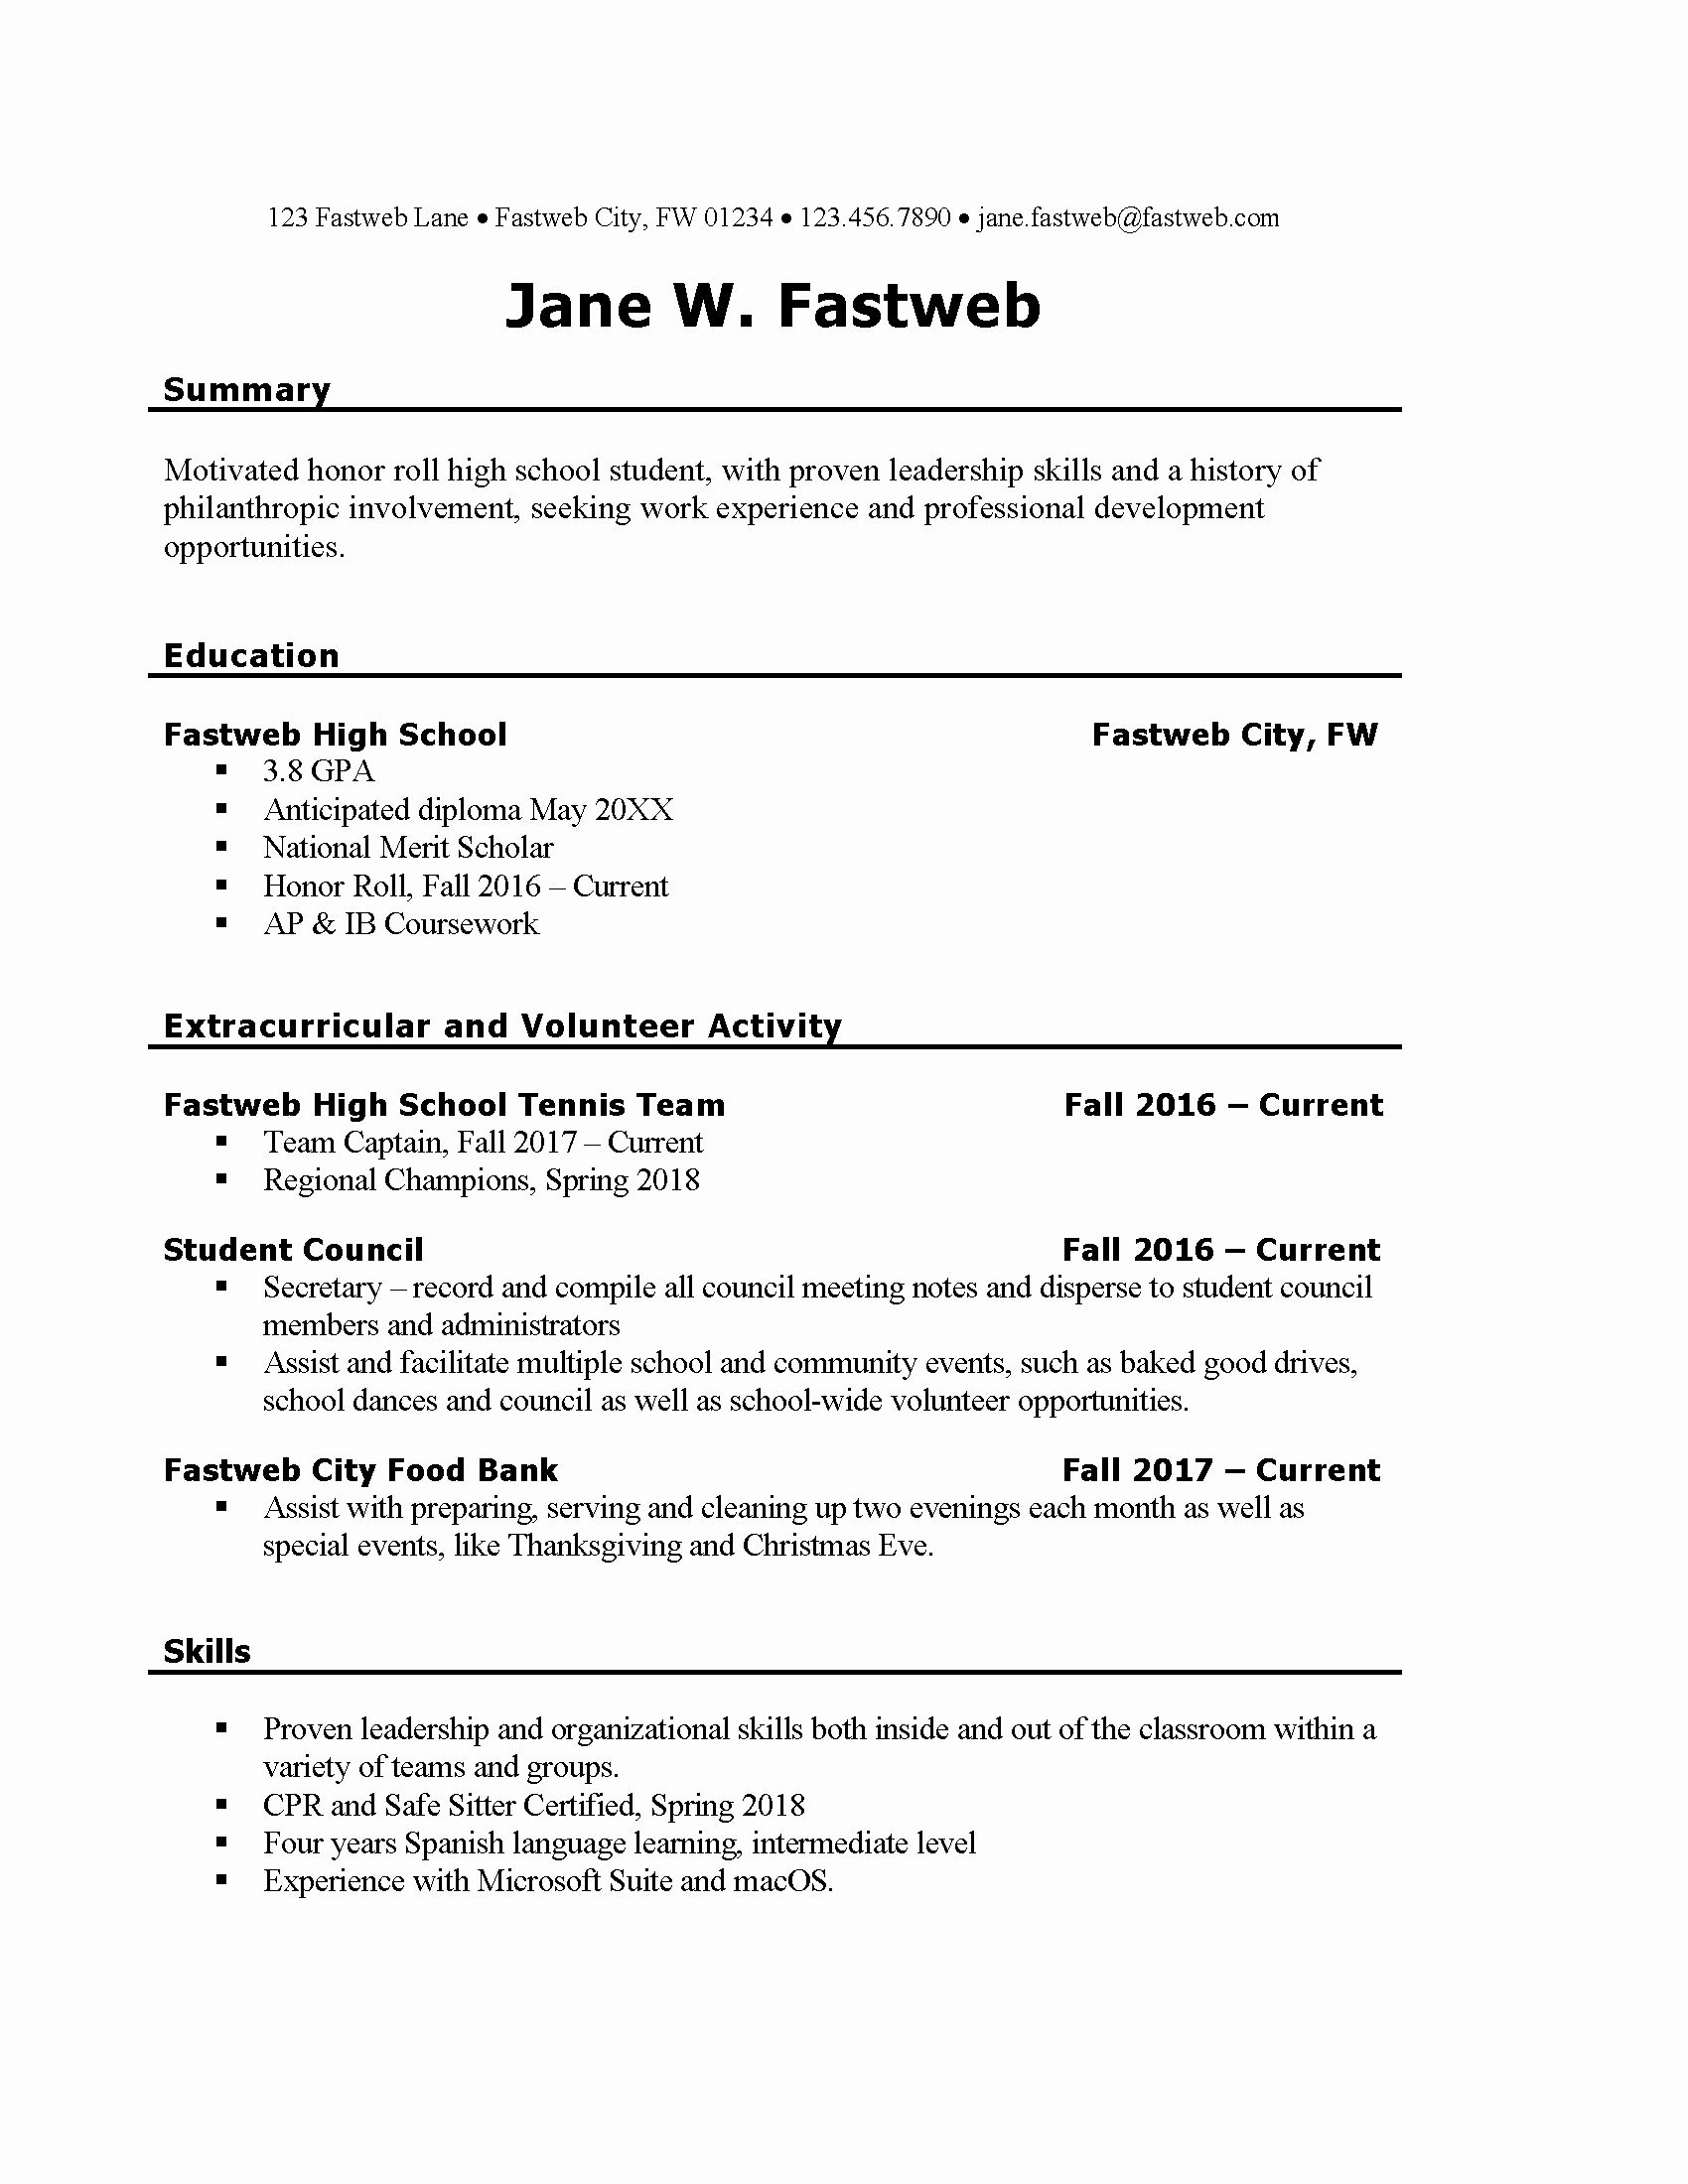 23 High School Resume Skills Examples in 2020 Job resume